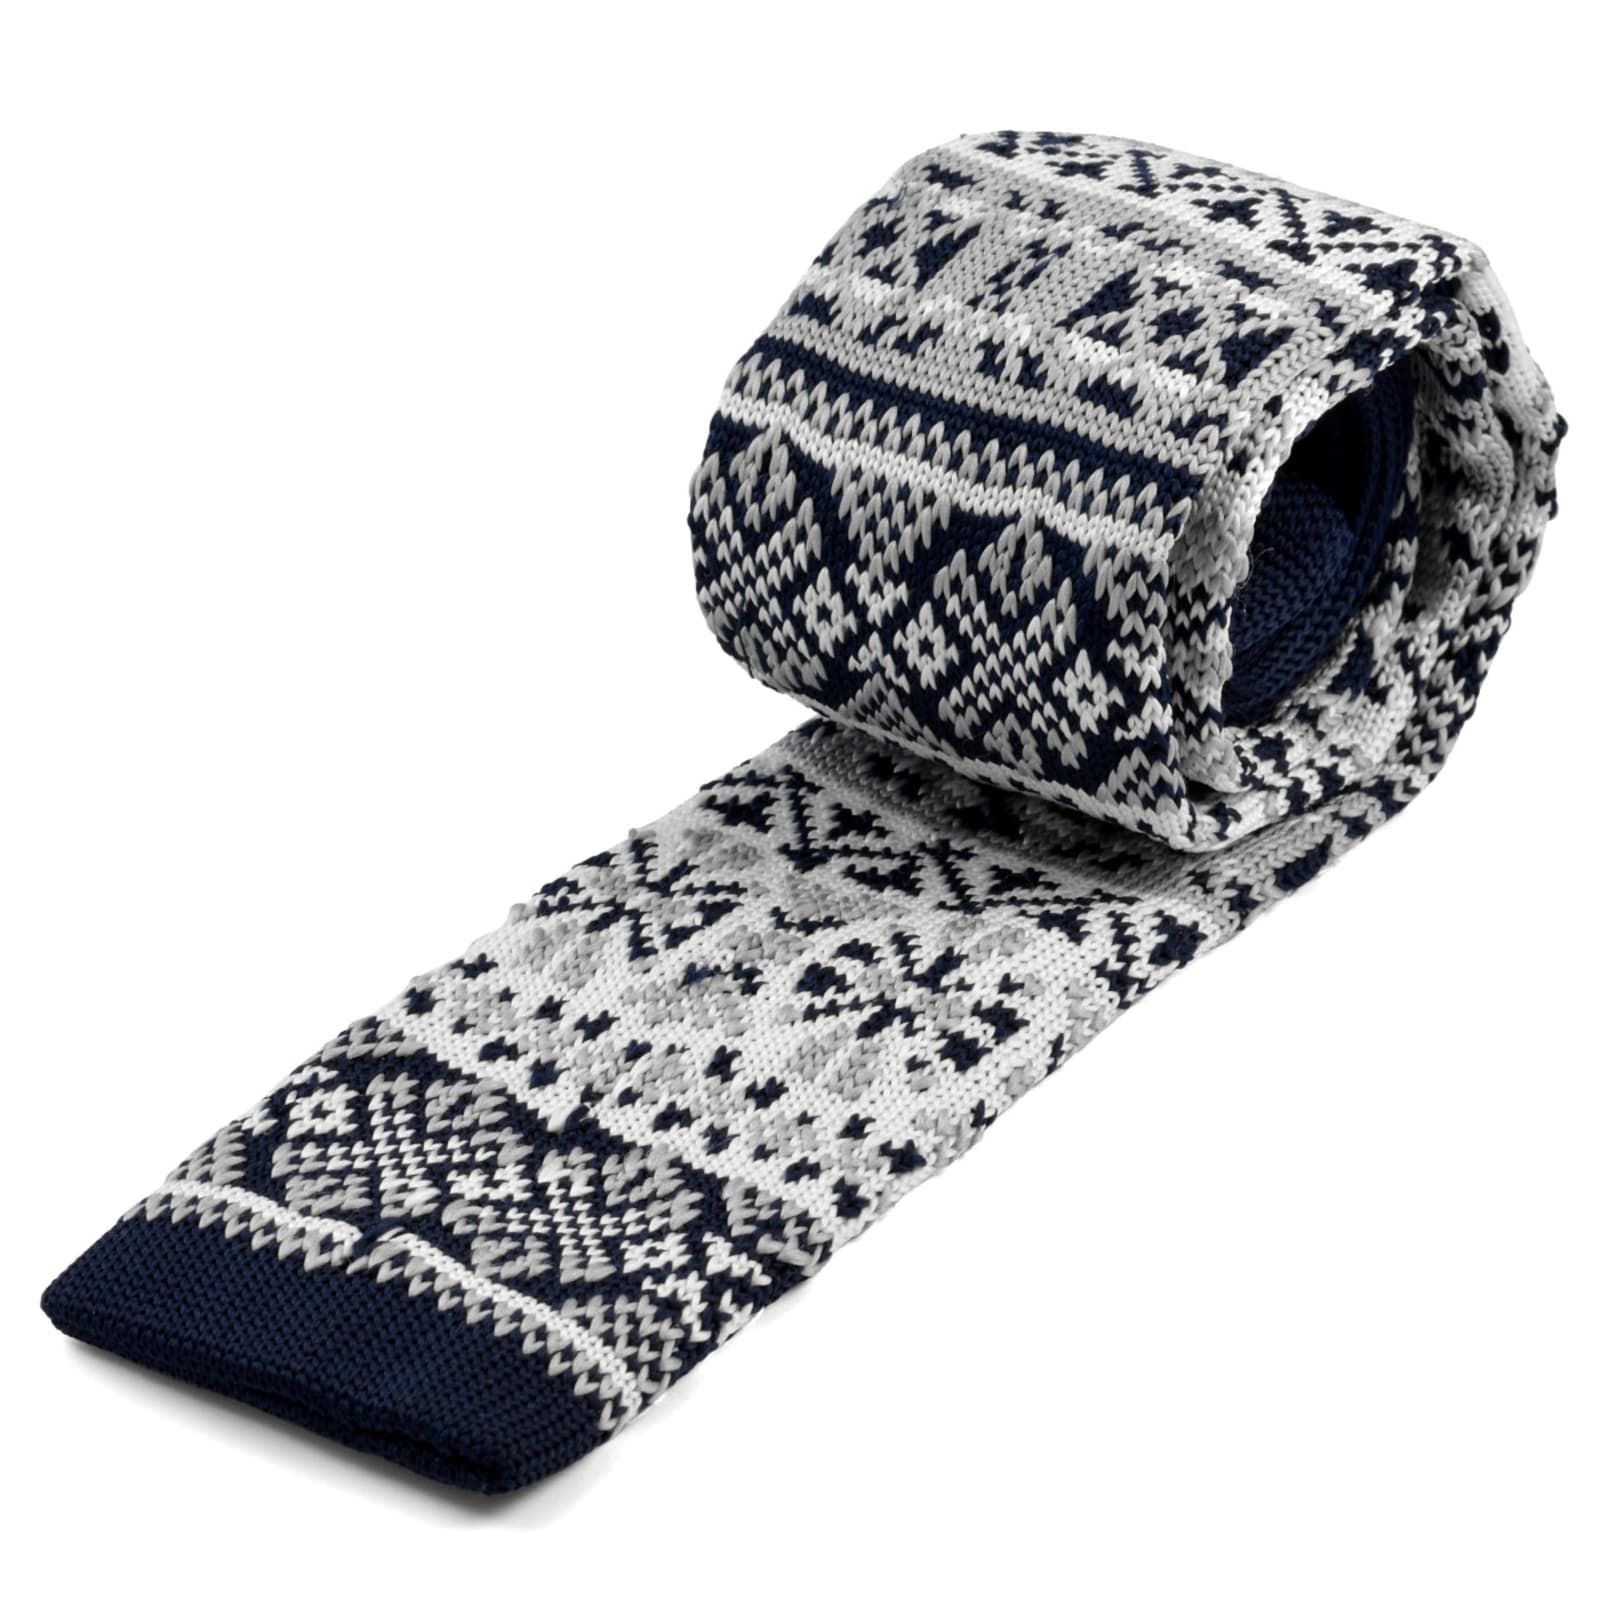 Photo of Nordic Patterned Knitted Tie | In stock! | Tailor Toki